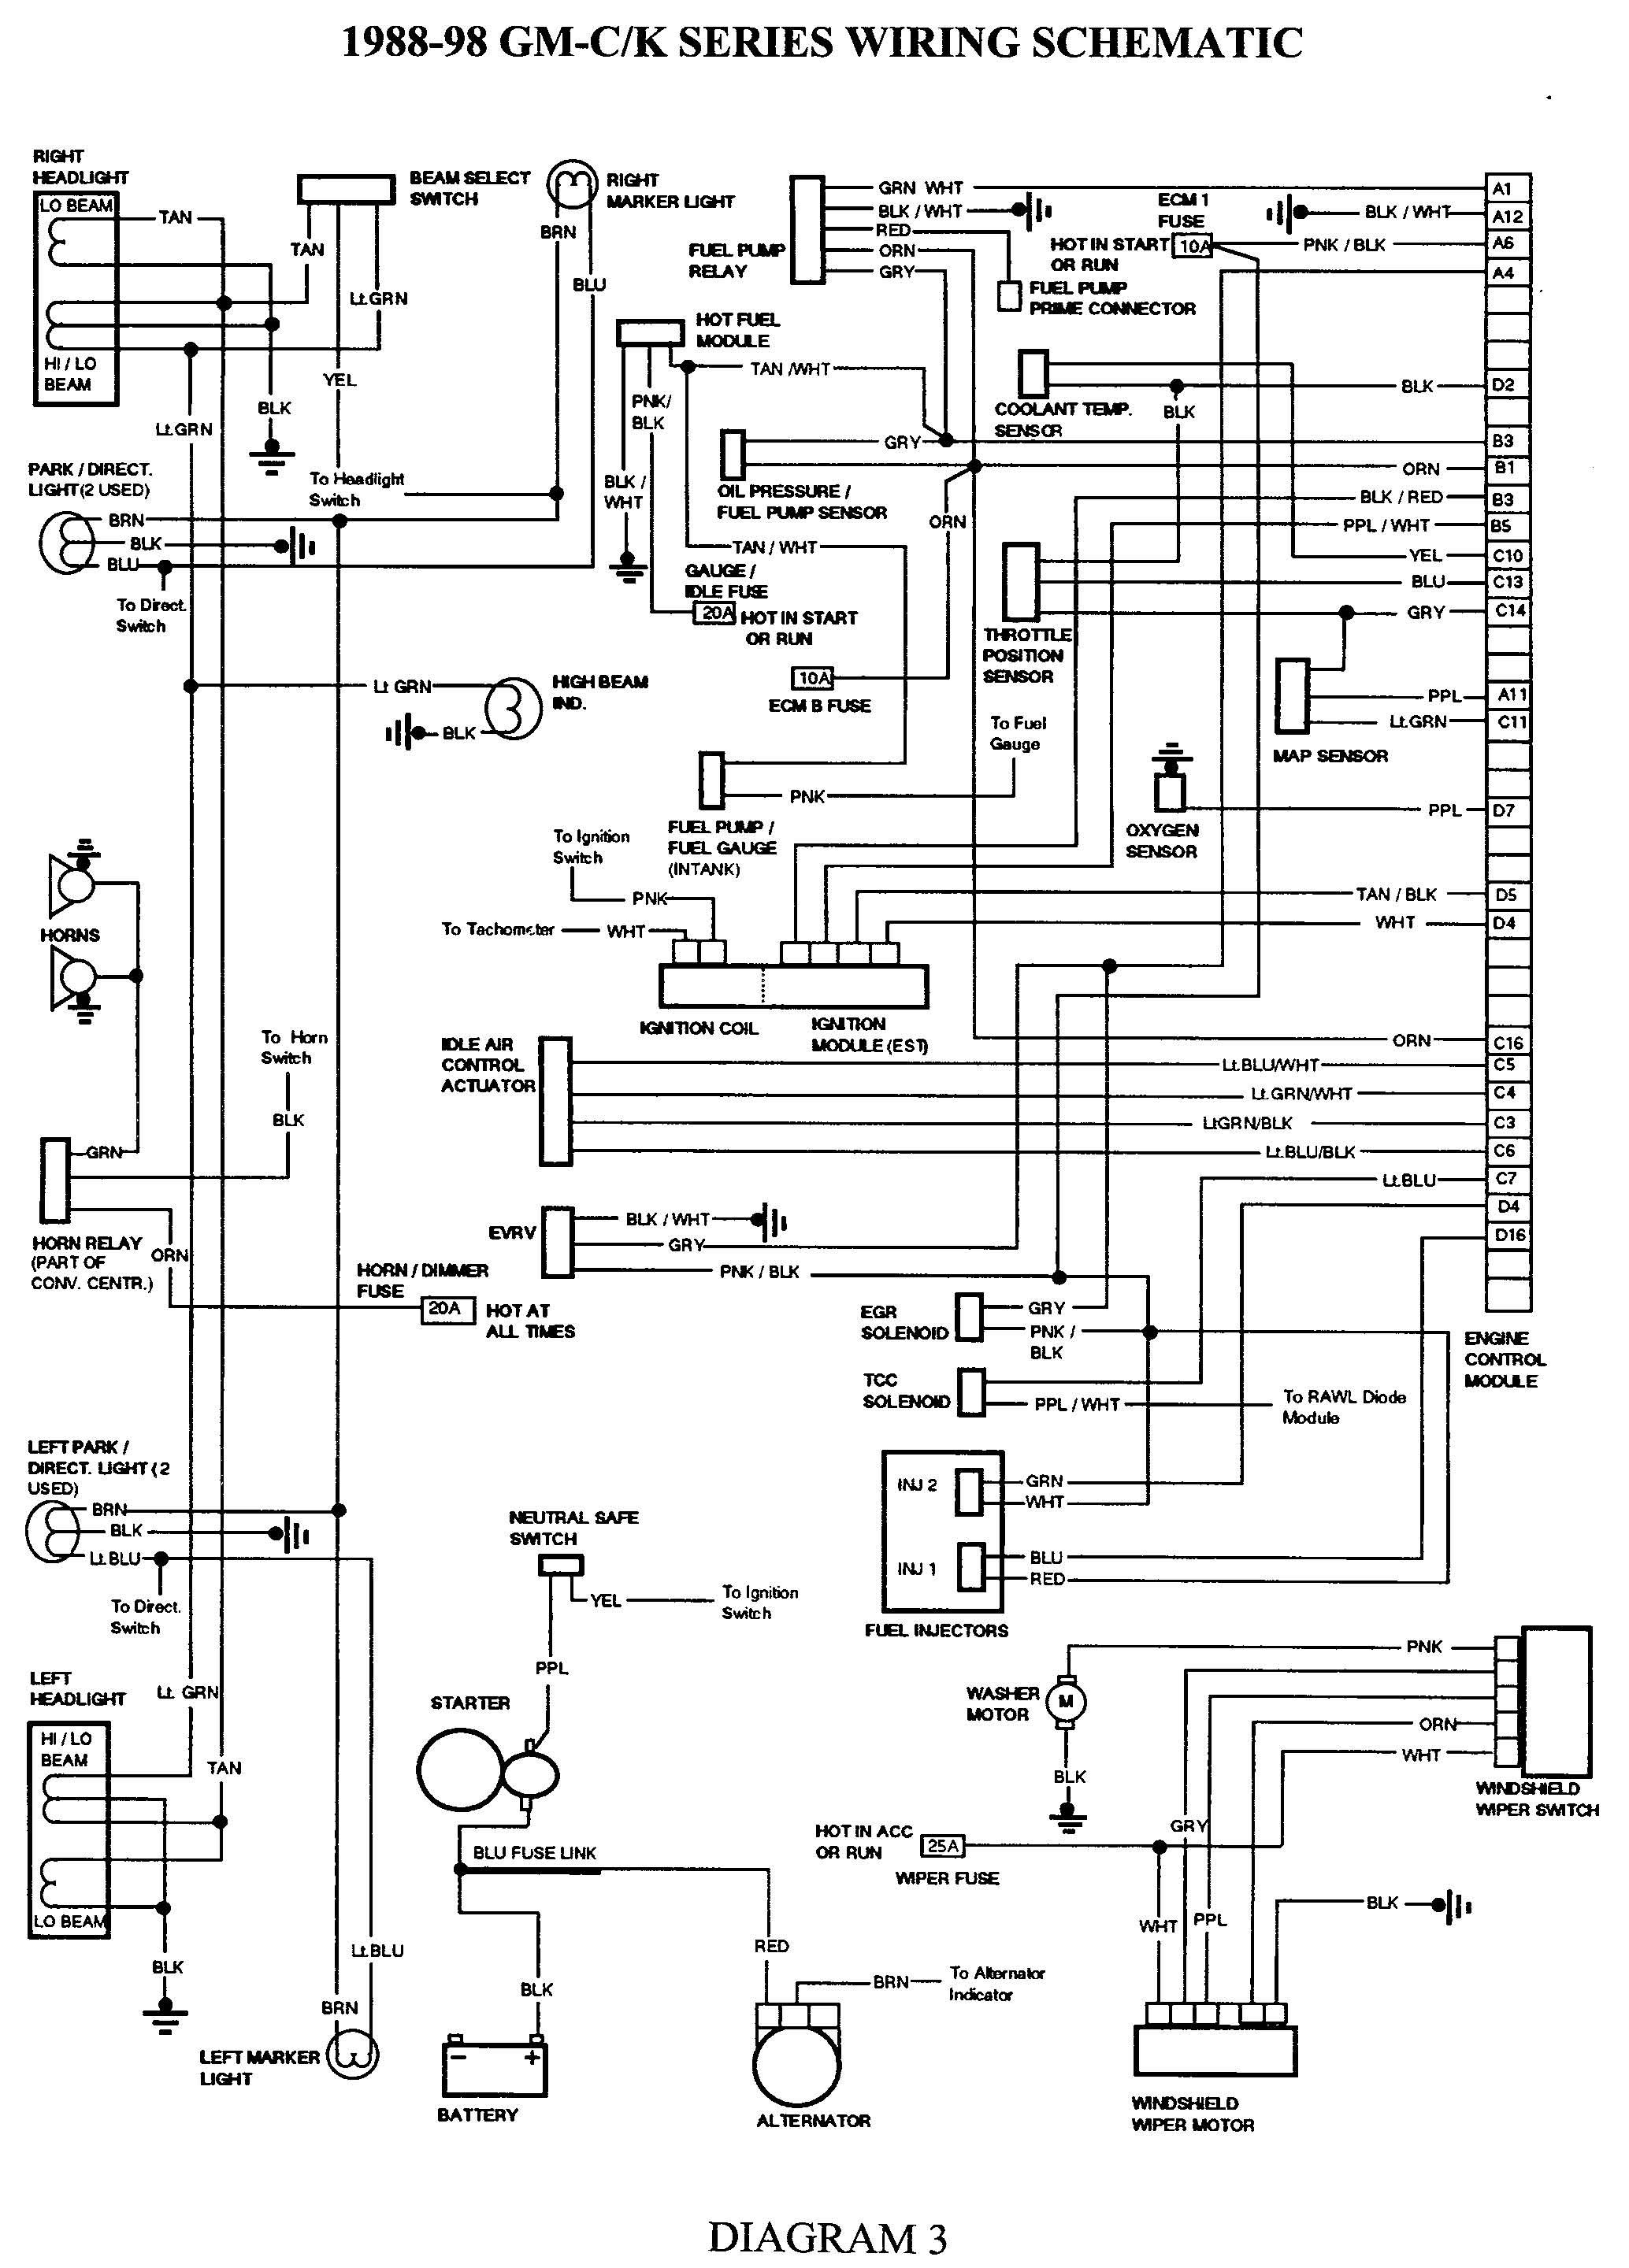 b2f2e5dbdc07dada83ef514f6d4ce3d4 gmc truck wiring diagrams on gm wiring harness diagram 88 98 kc wiring harness diagram at bakdesigns.co